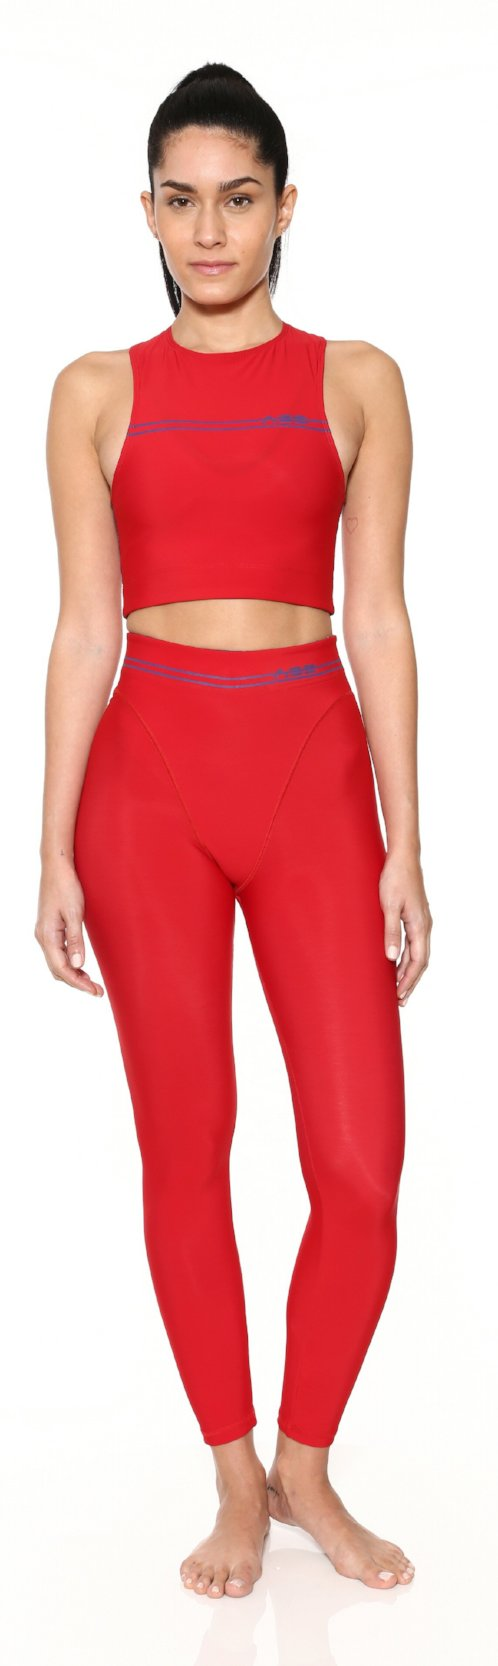 Lipstick Racer Crop Top